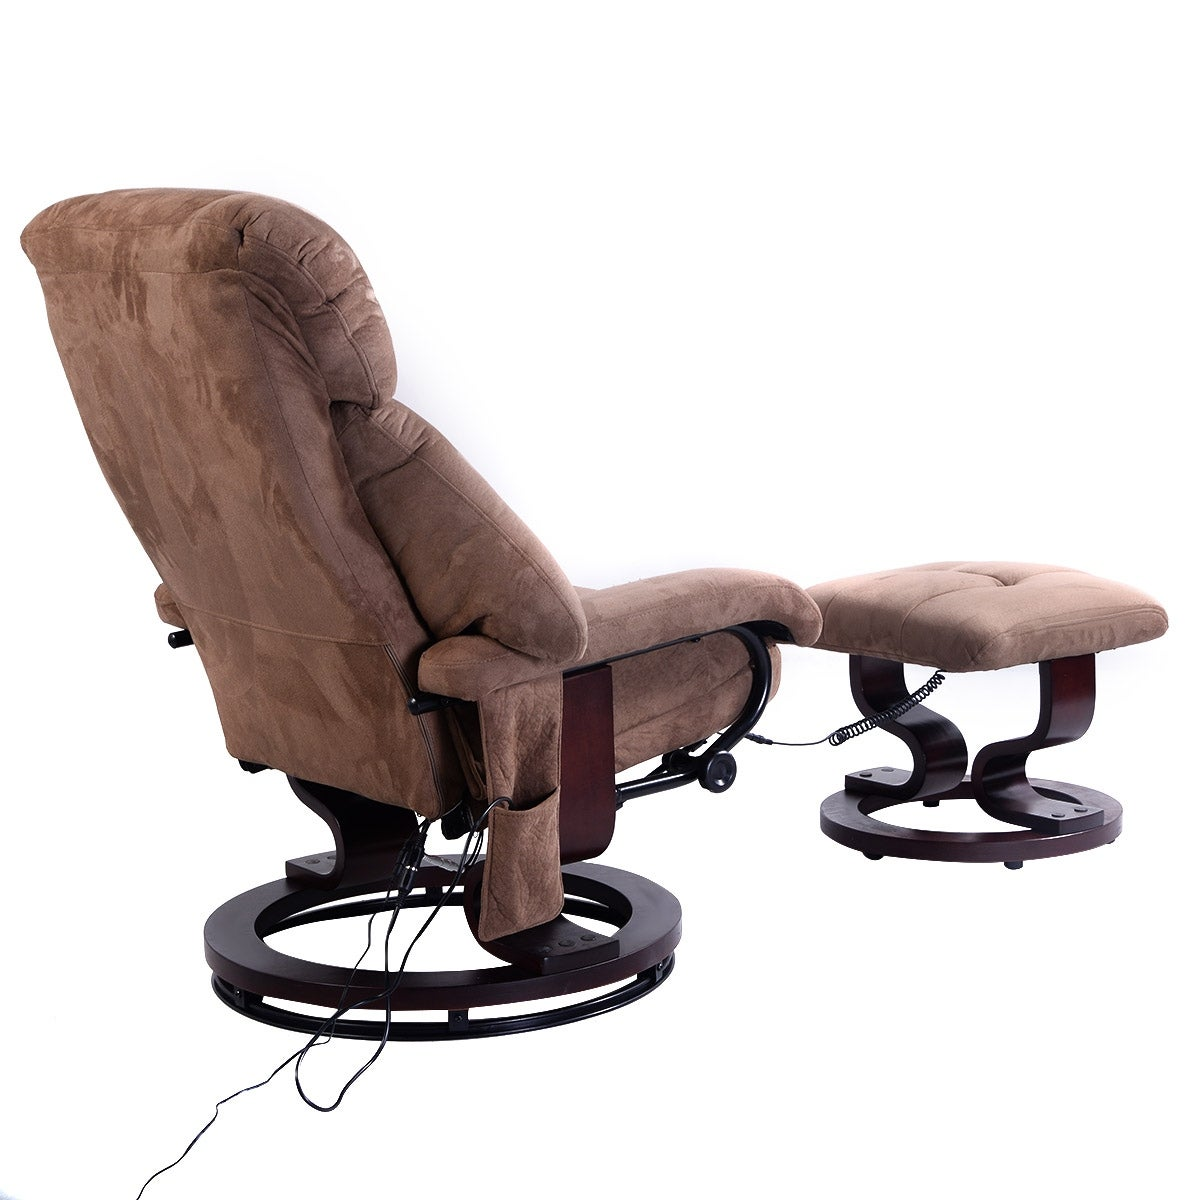 Costway Brown Leisure Recliner Chair Ottoman With 8 Motor Massage Heated  Swivel   Free Shipping Today   Overstock.com   24623499